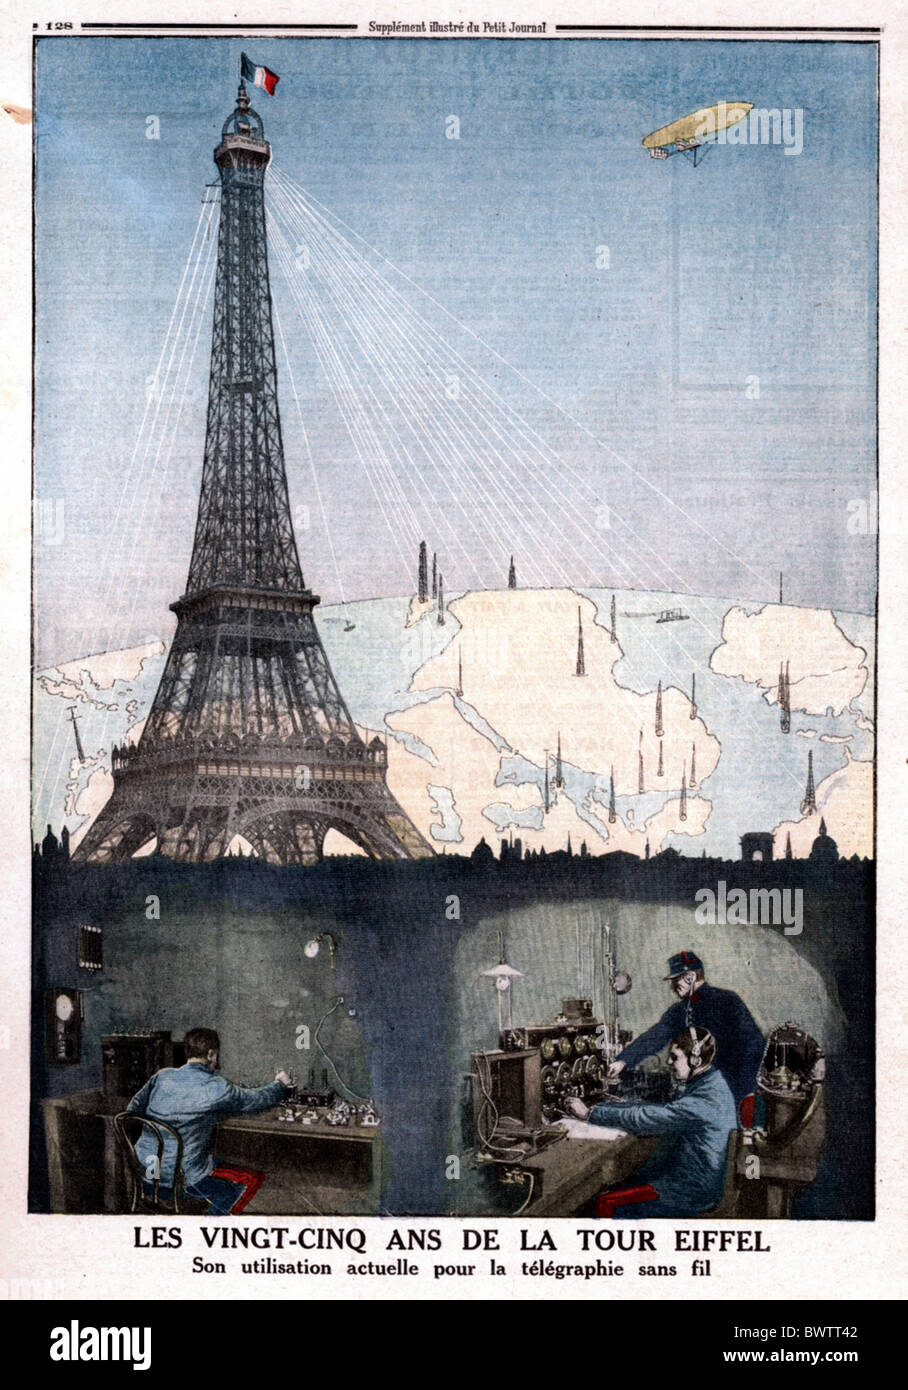 Le Petit Journal illustration 1914 Eiffel tower Paris France Europe historical historic history magazine co - Stock Image